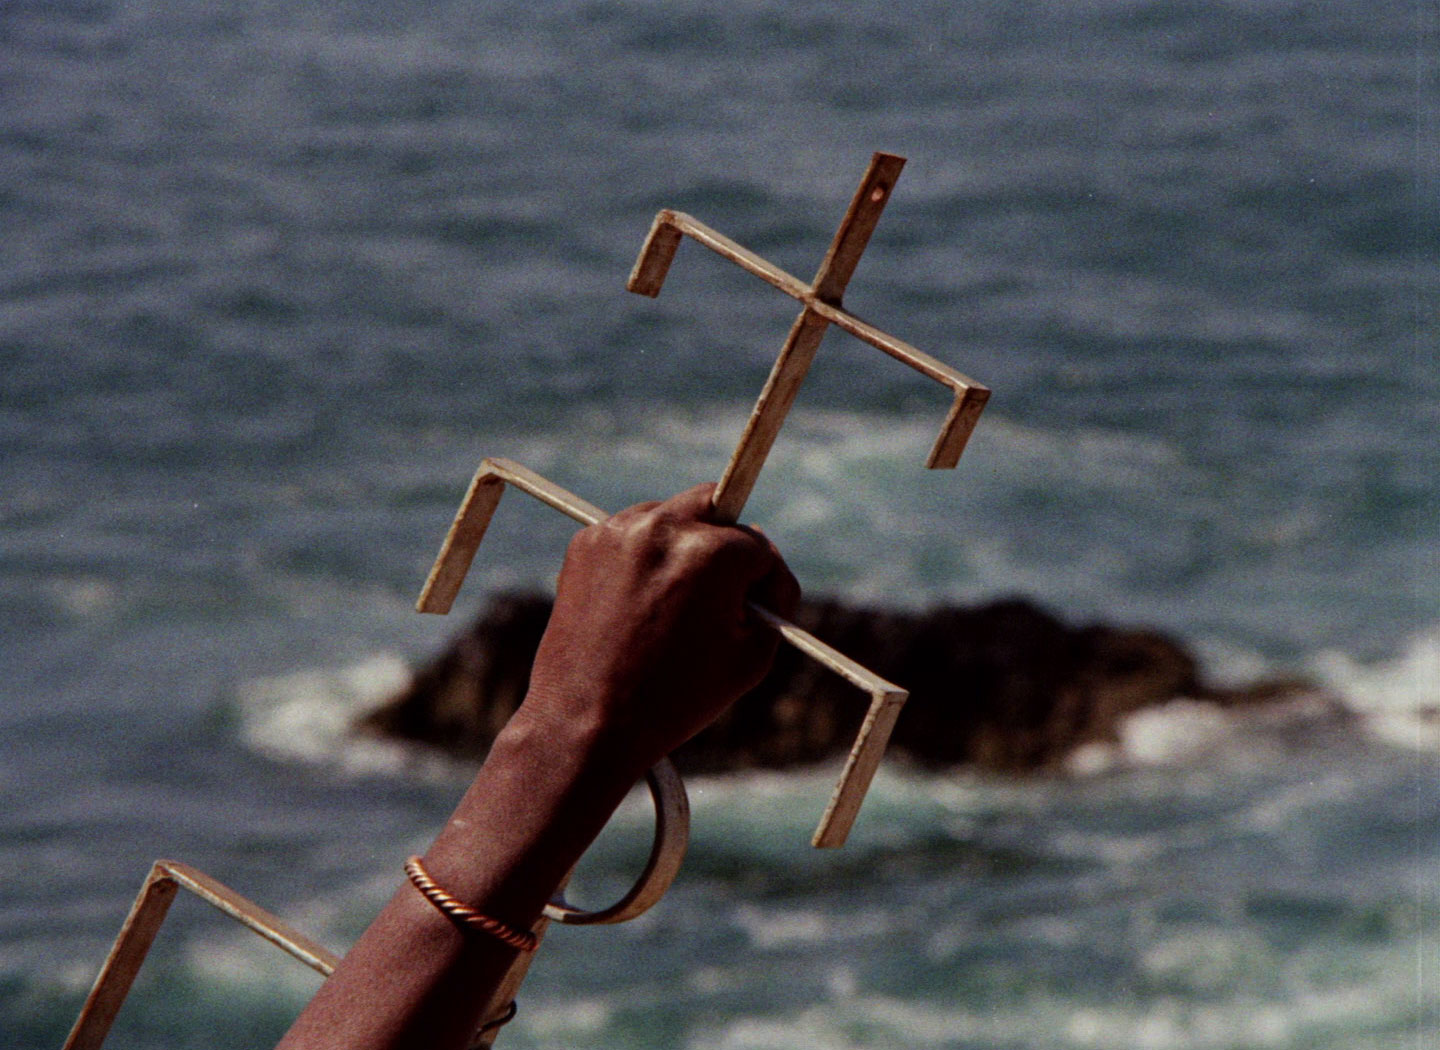 Touki Bouki (Journey of the Hyena, 1973) de Djibril Diop Mambéty